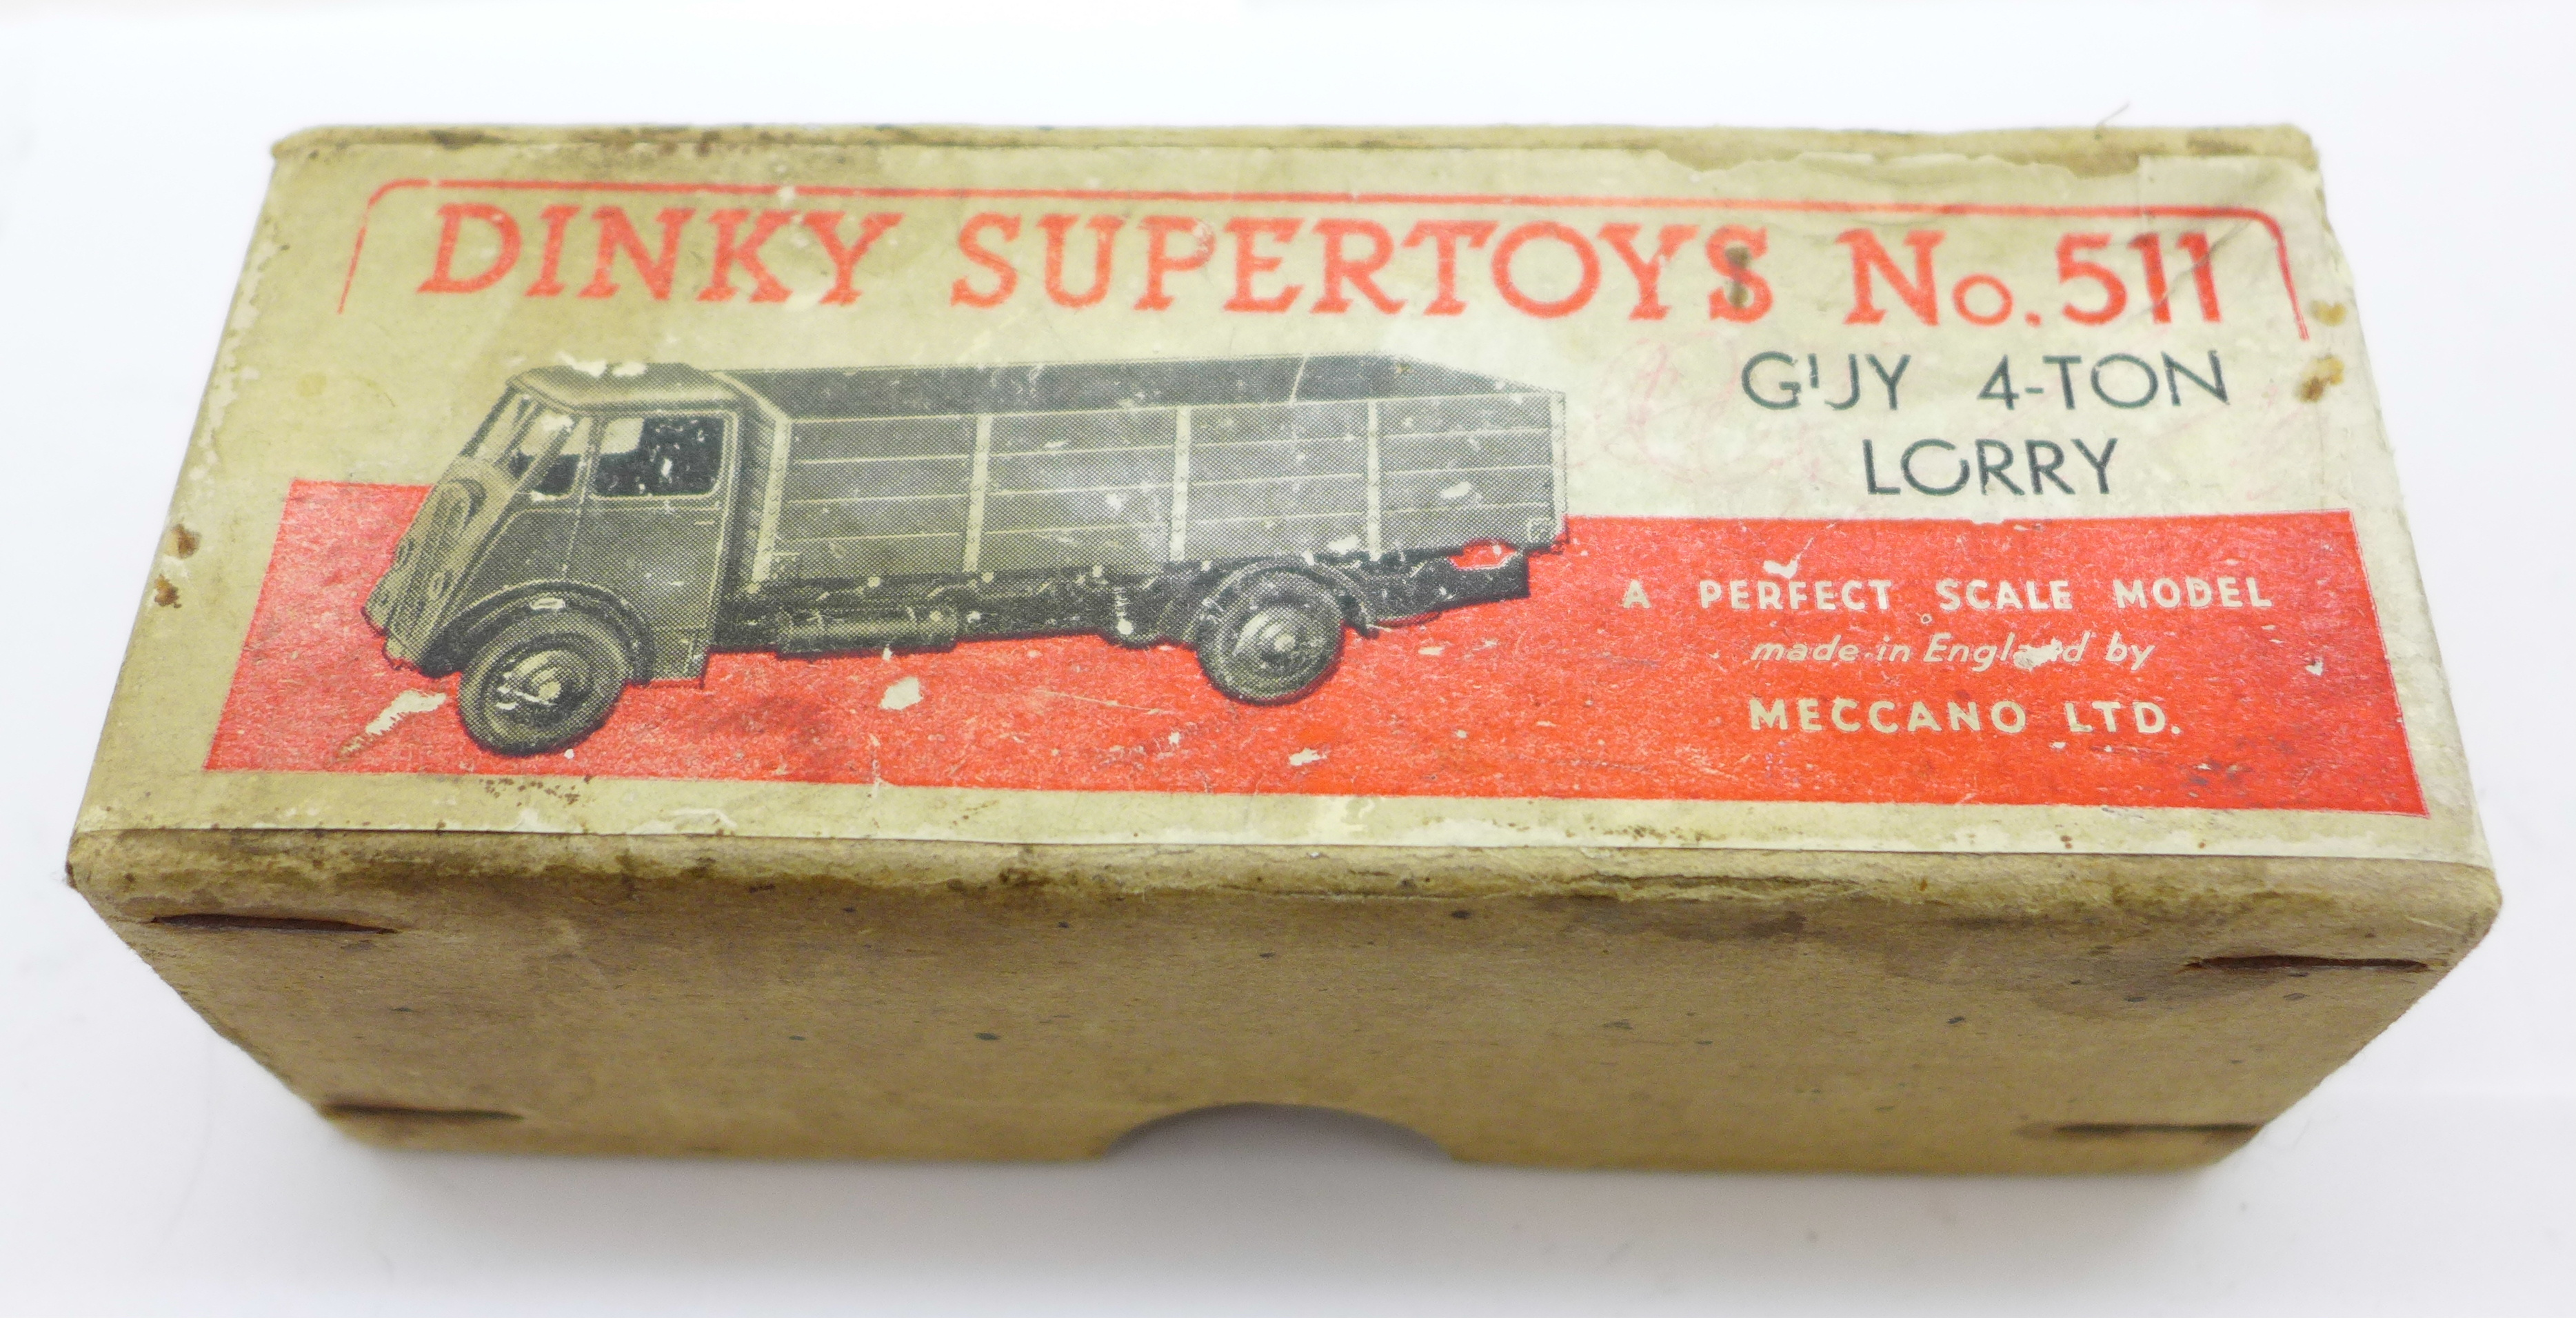 A Dinky Supertoys No. 511 Guy 4-Ton Lorry, boxed - Image 4 of 4